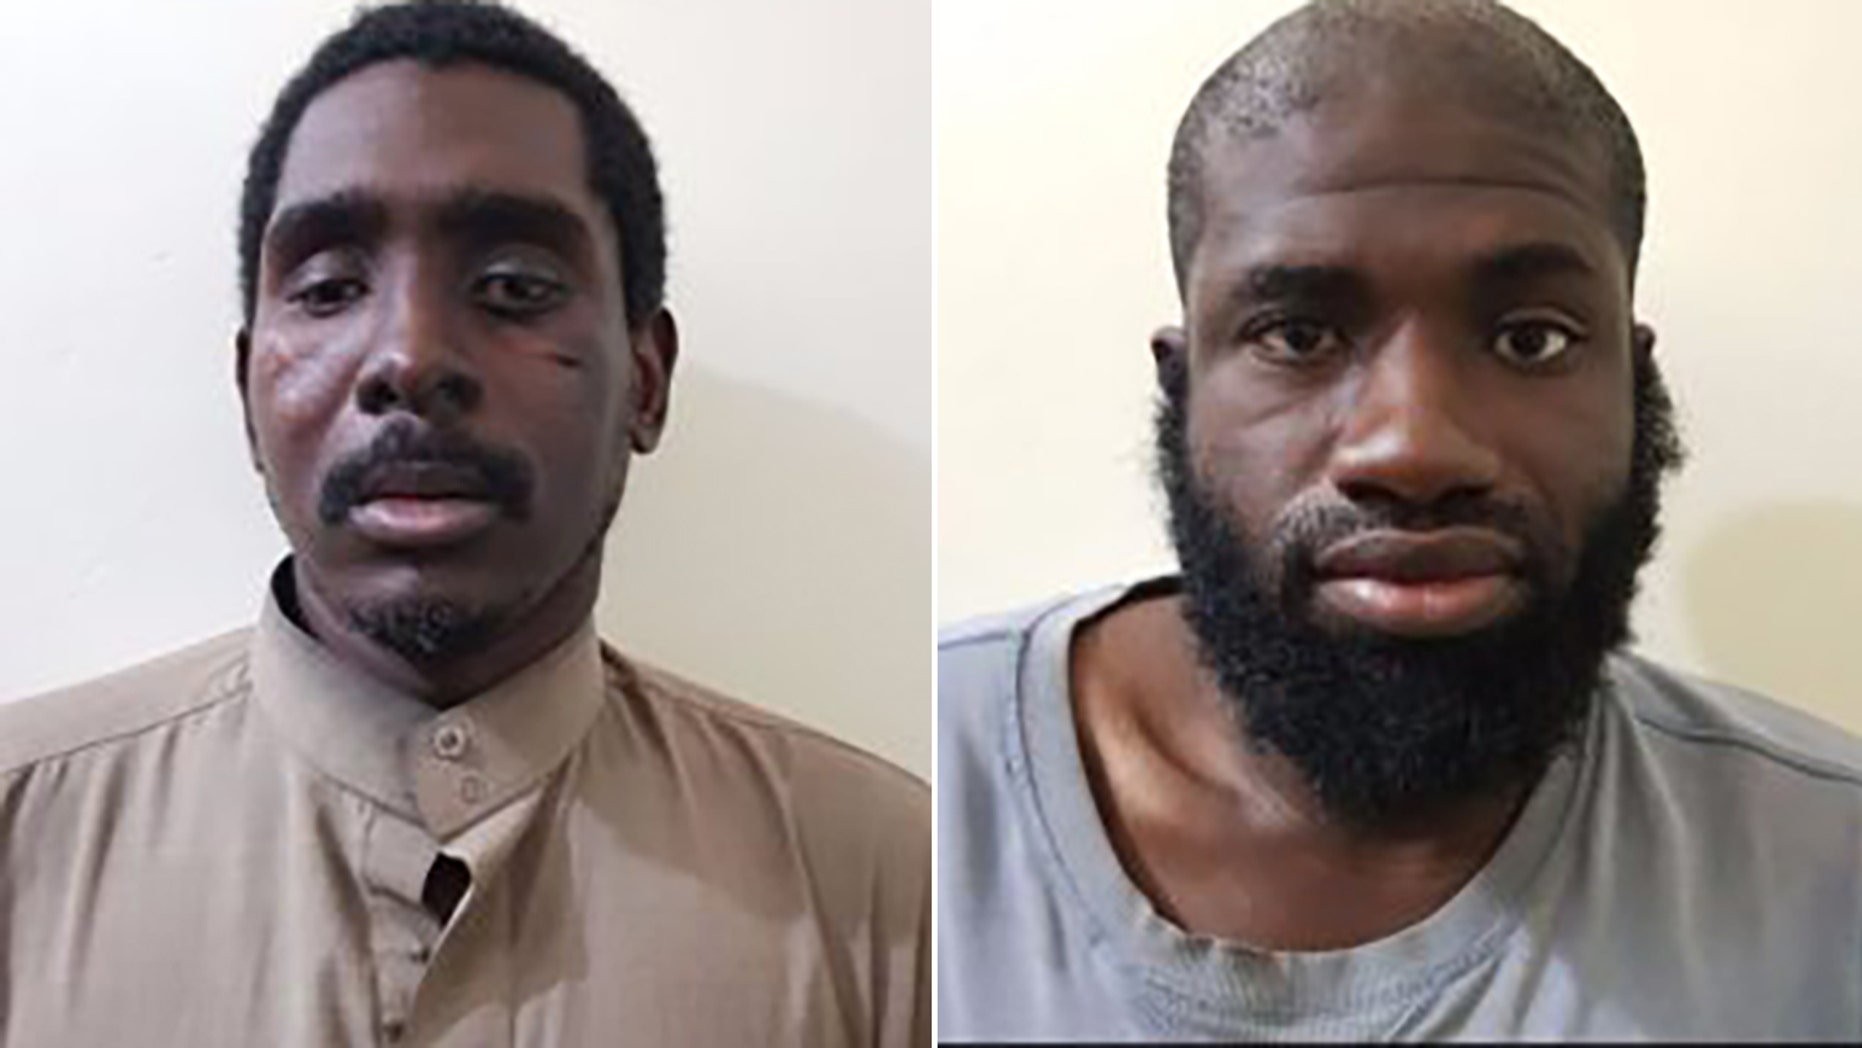 Zaid Abed al-Hamid, left, and Warren Christopher Clark are said to be American citizens fighting for ISIS who were recently captured by Syrian Democratic Forces. (SDF-Press.com)